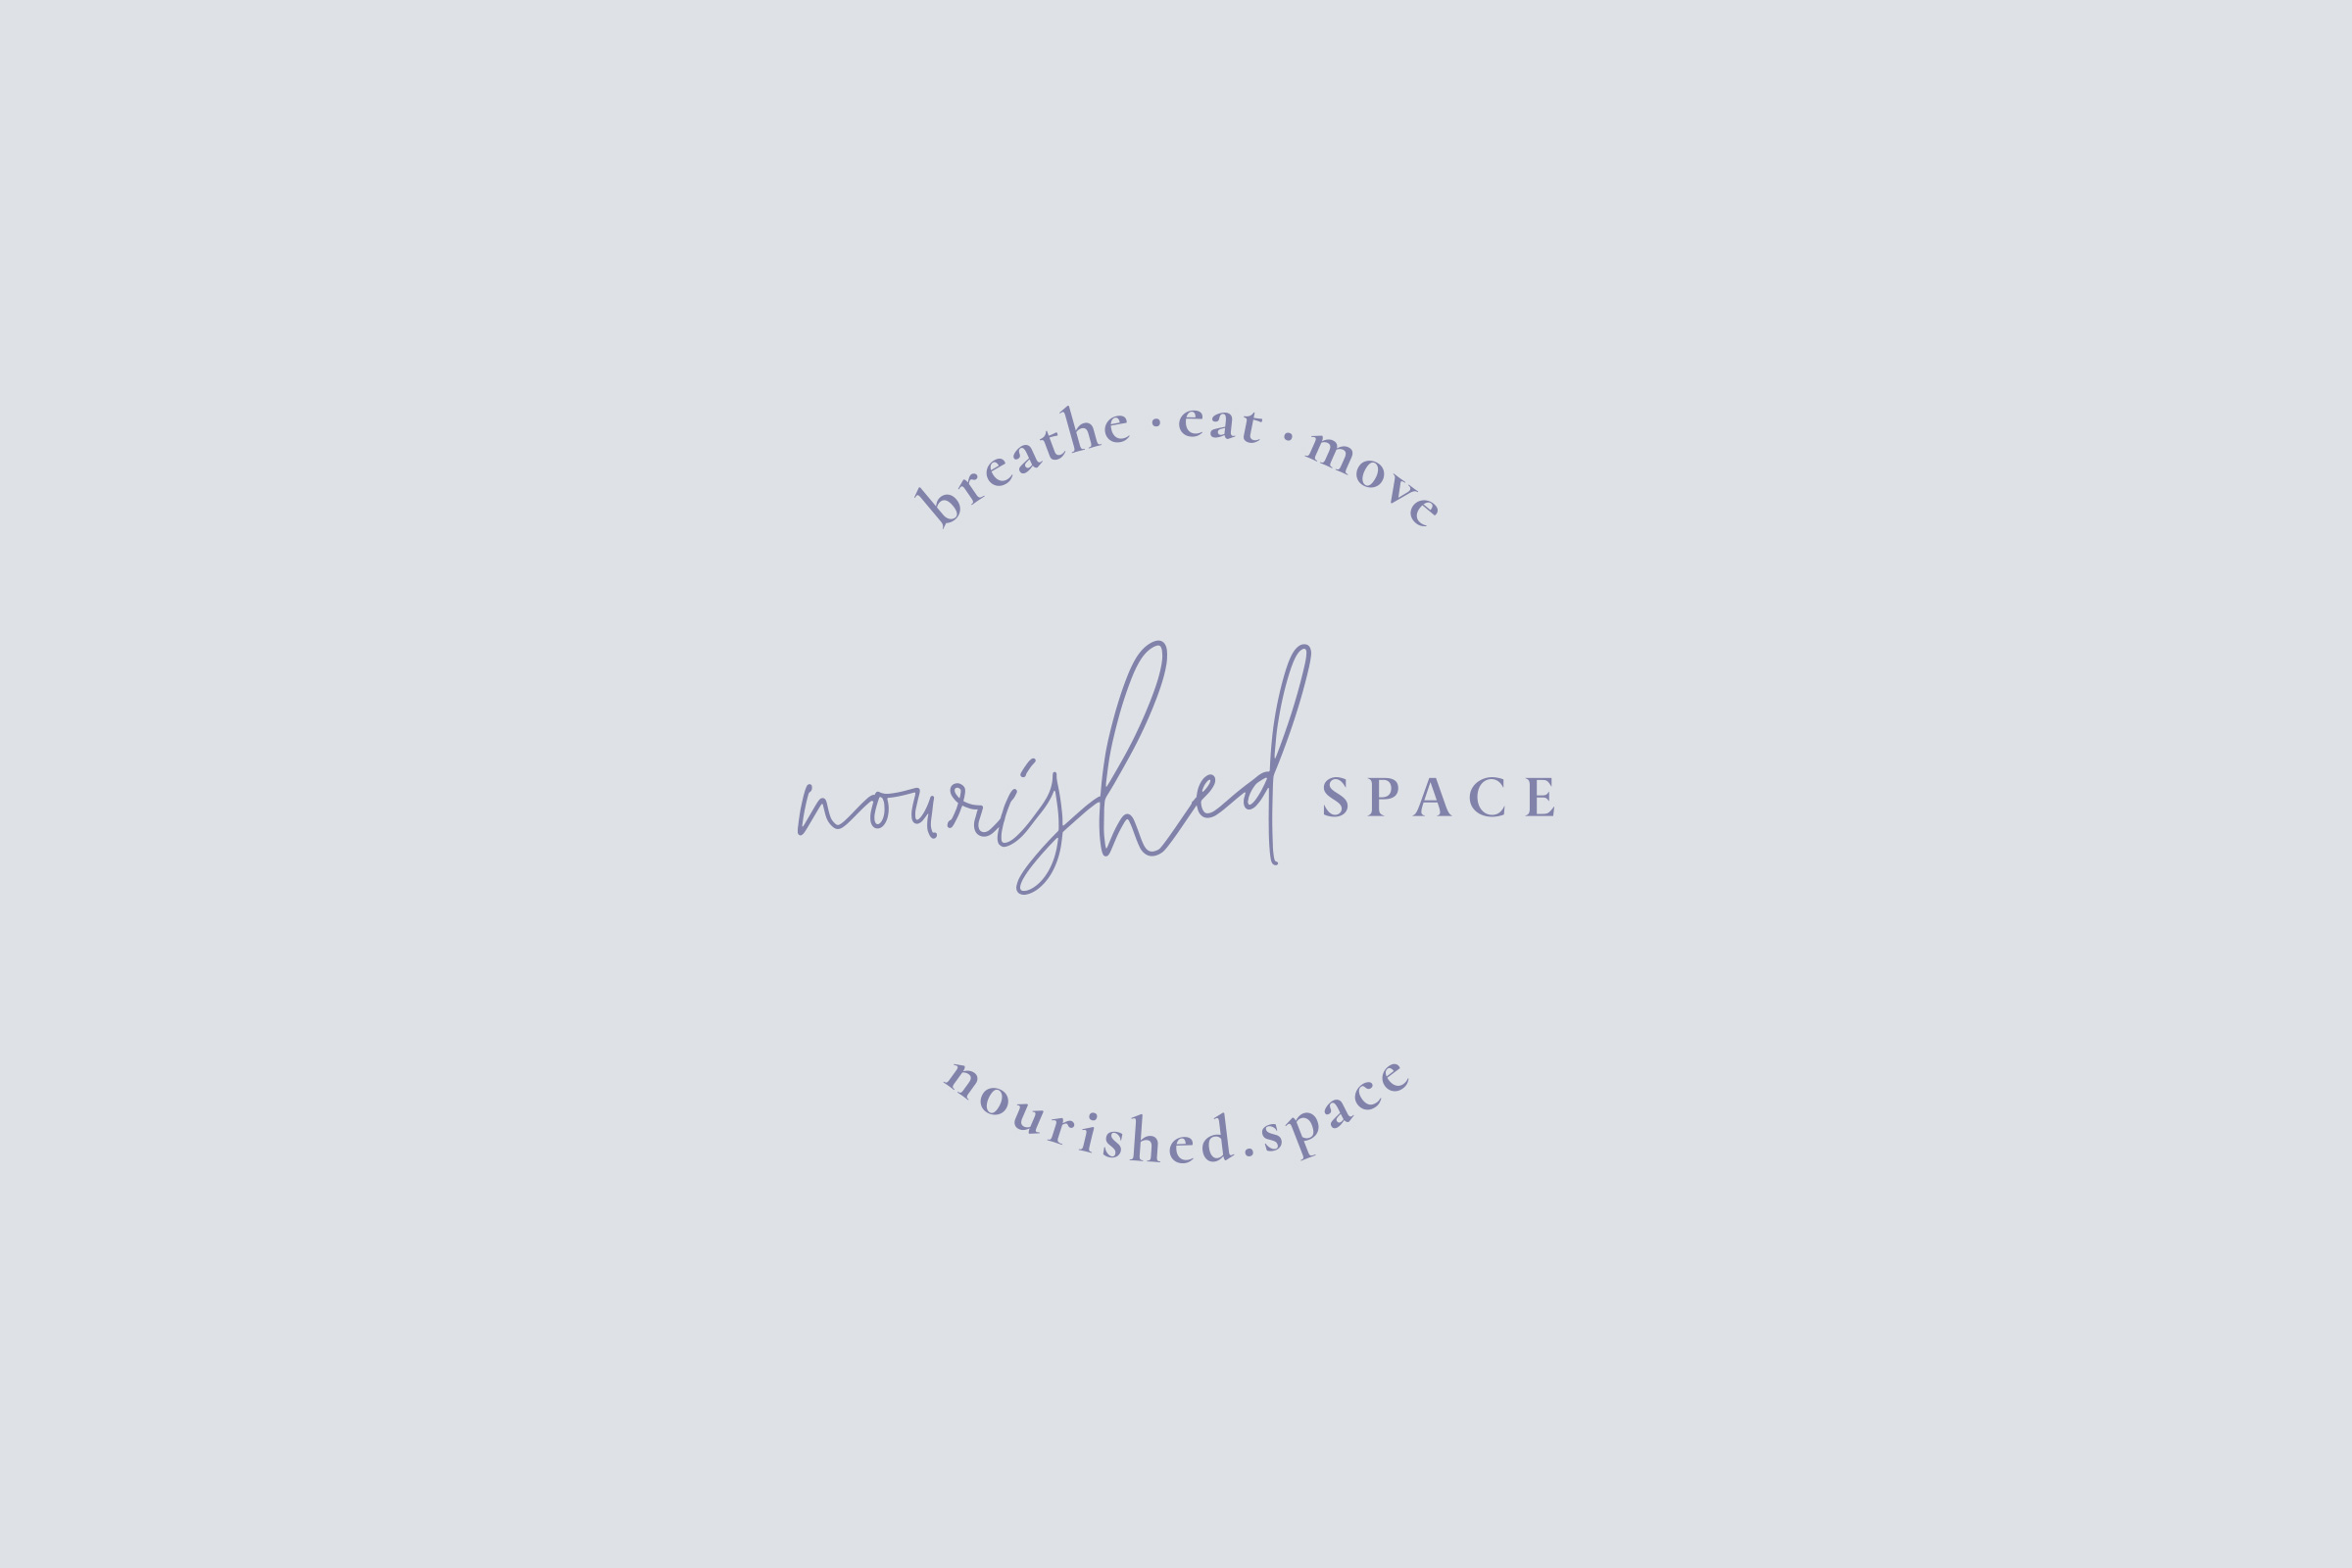 00_Nourished_Space_Branding_by_Foster_Creative_2.jpg